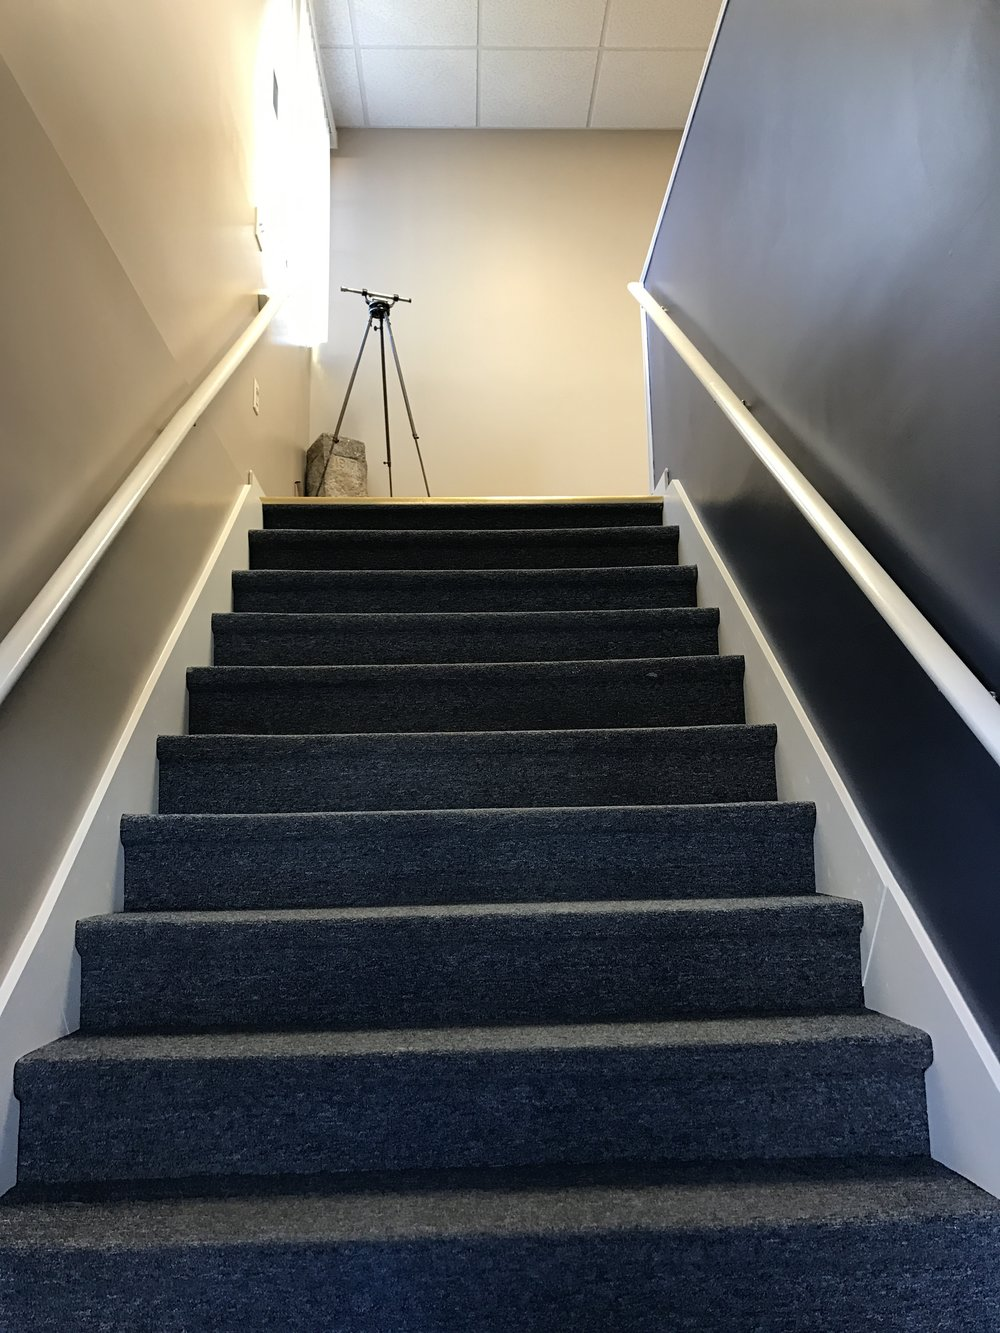 Upstairs-Stairs.jpg